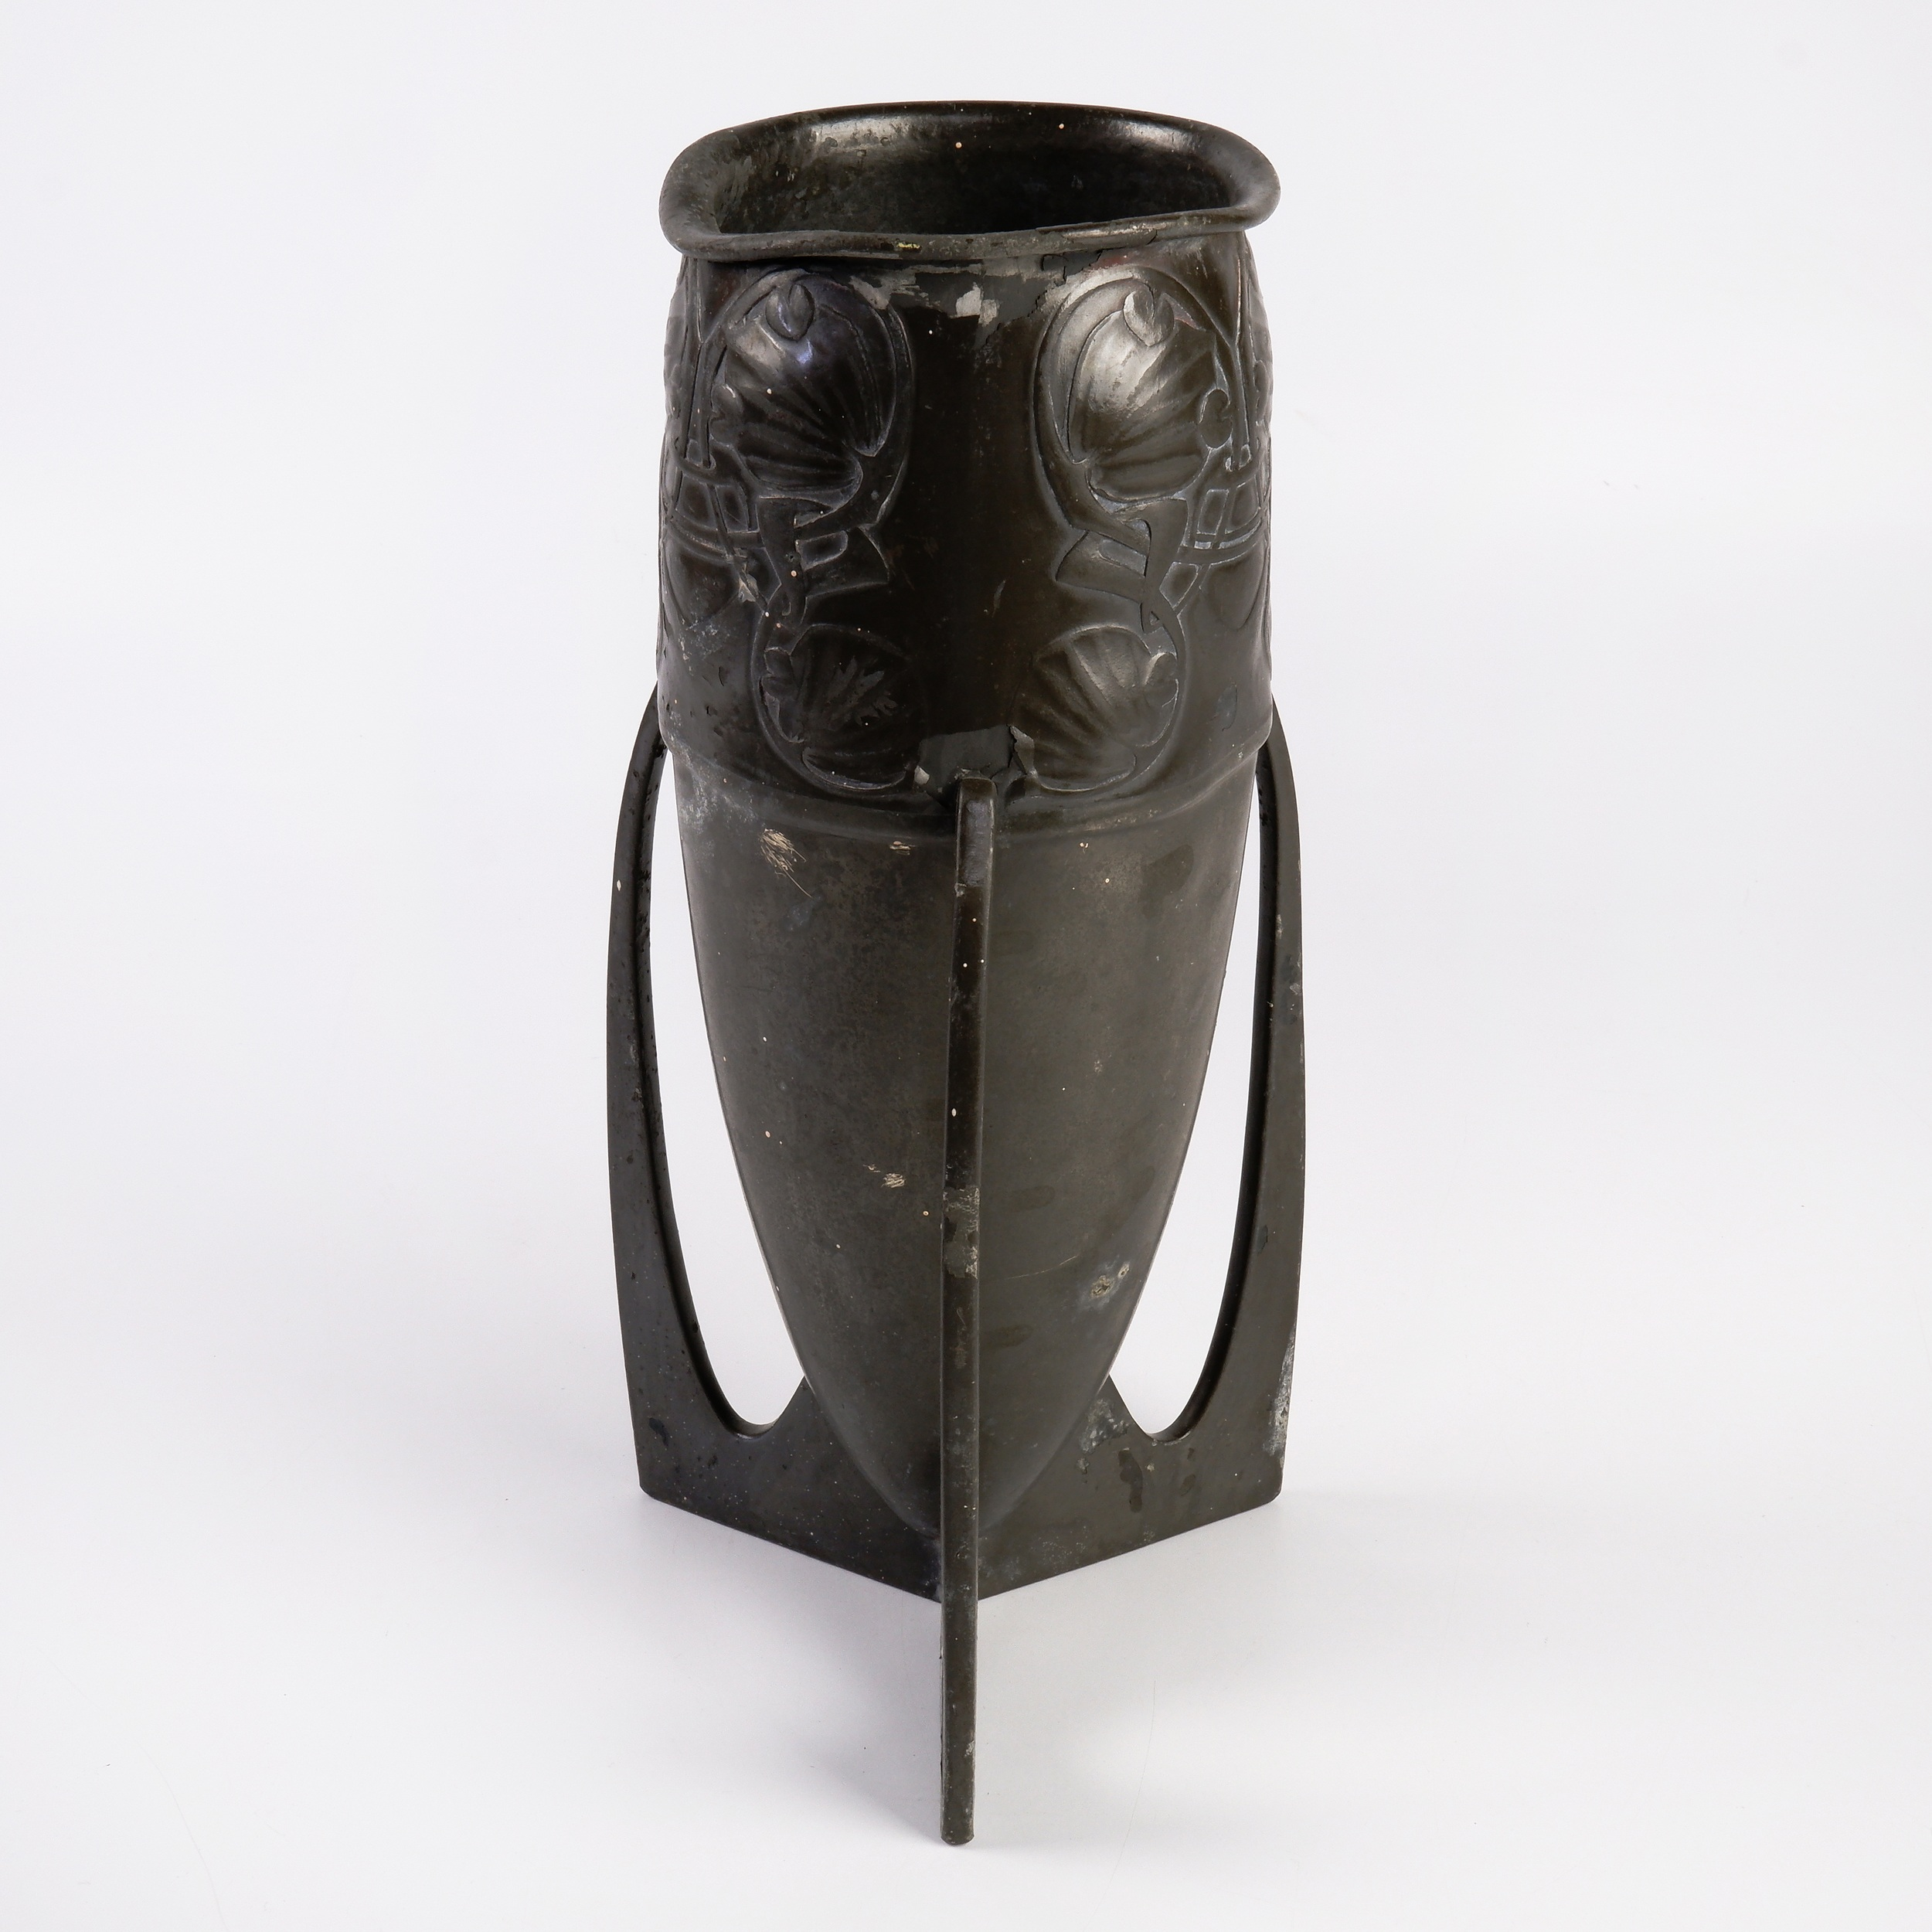 'Liberty & Co Tudric Pewter Bullet Vase Designed by Archibald Knox Circa 1910'